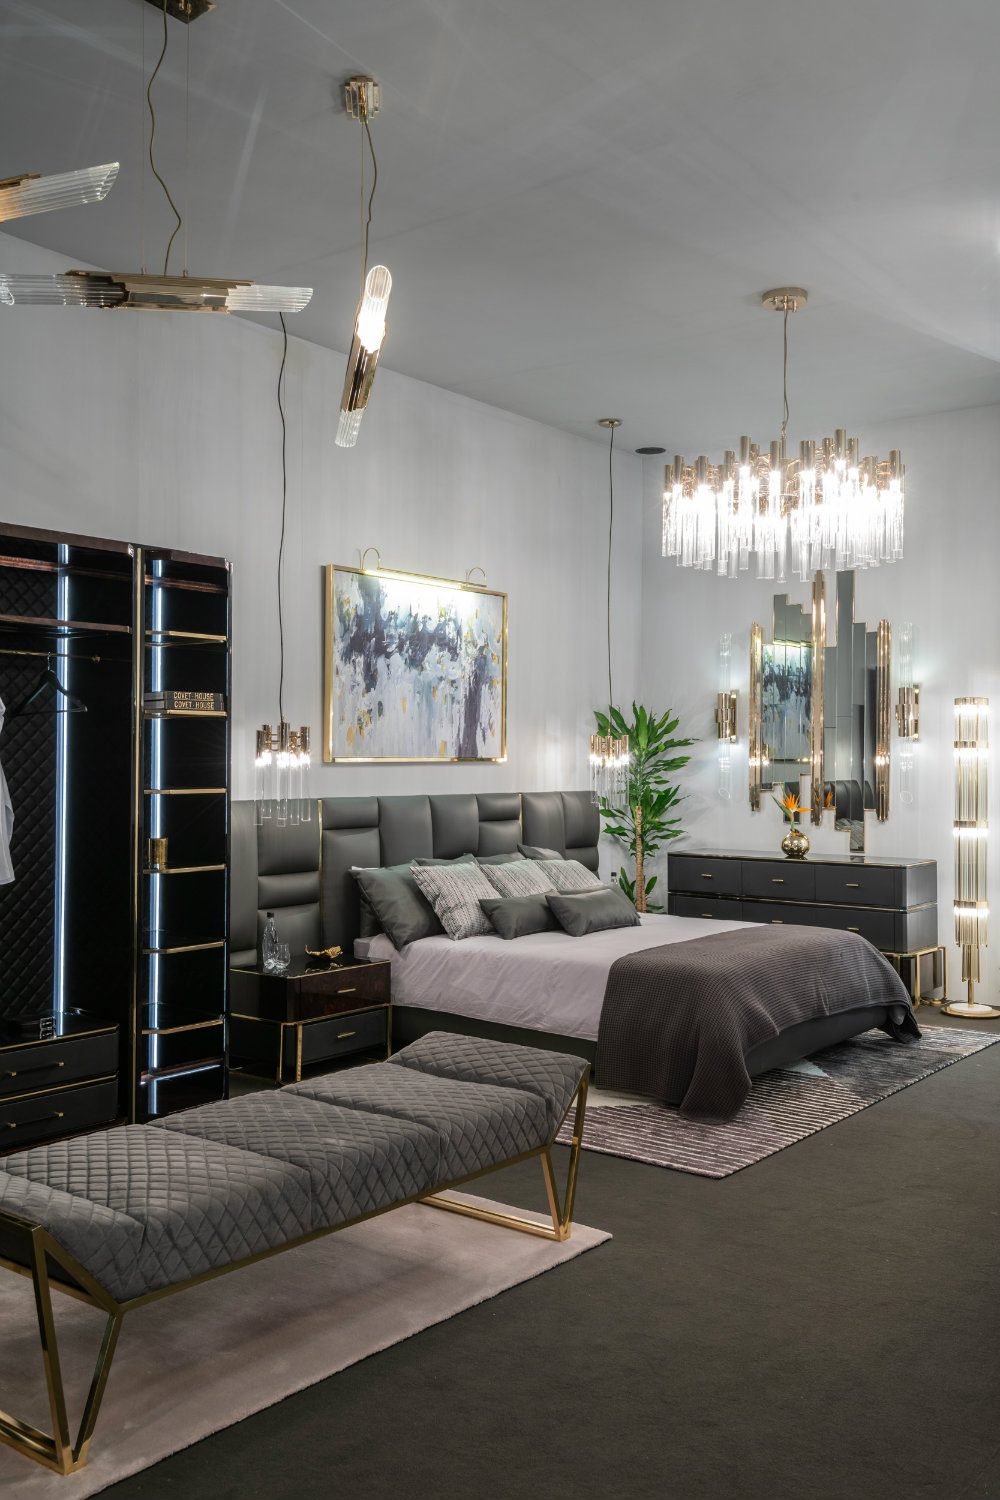 Hábitat Valencia 2019 – First Day Highlights luxury showrooms in valencia Incredible Luxury Showrooms in Valencia To Visit H  bitat Valencia 2019 First Day Highlights 02 luxury showrooms in valencia Incredible Luxury Showrooms in Valencia To Visit H C3 A1bitat Valencia 2019 First Day Highlights 02